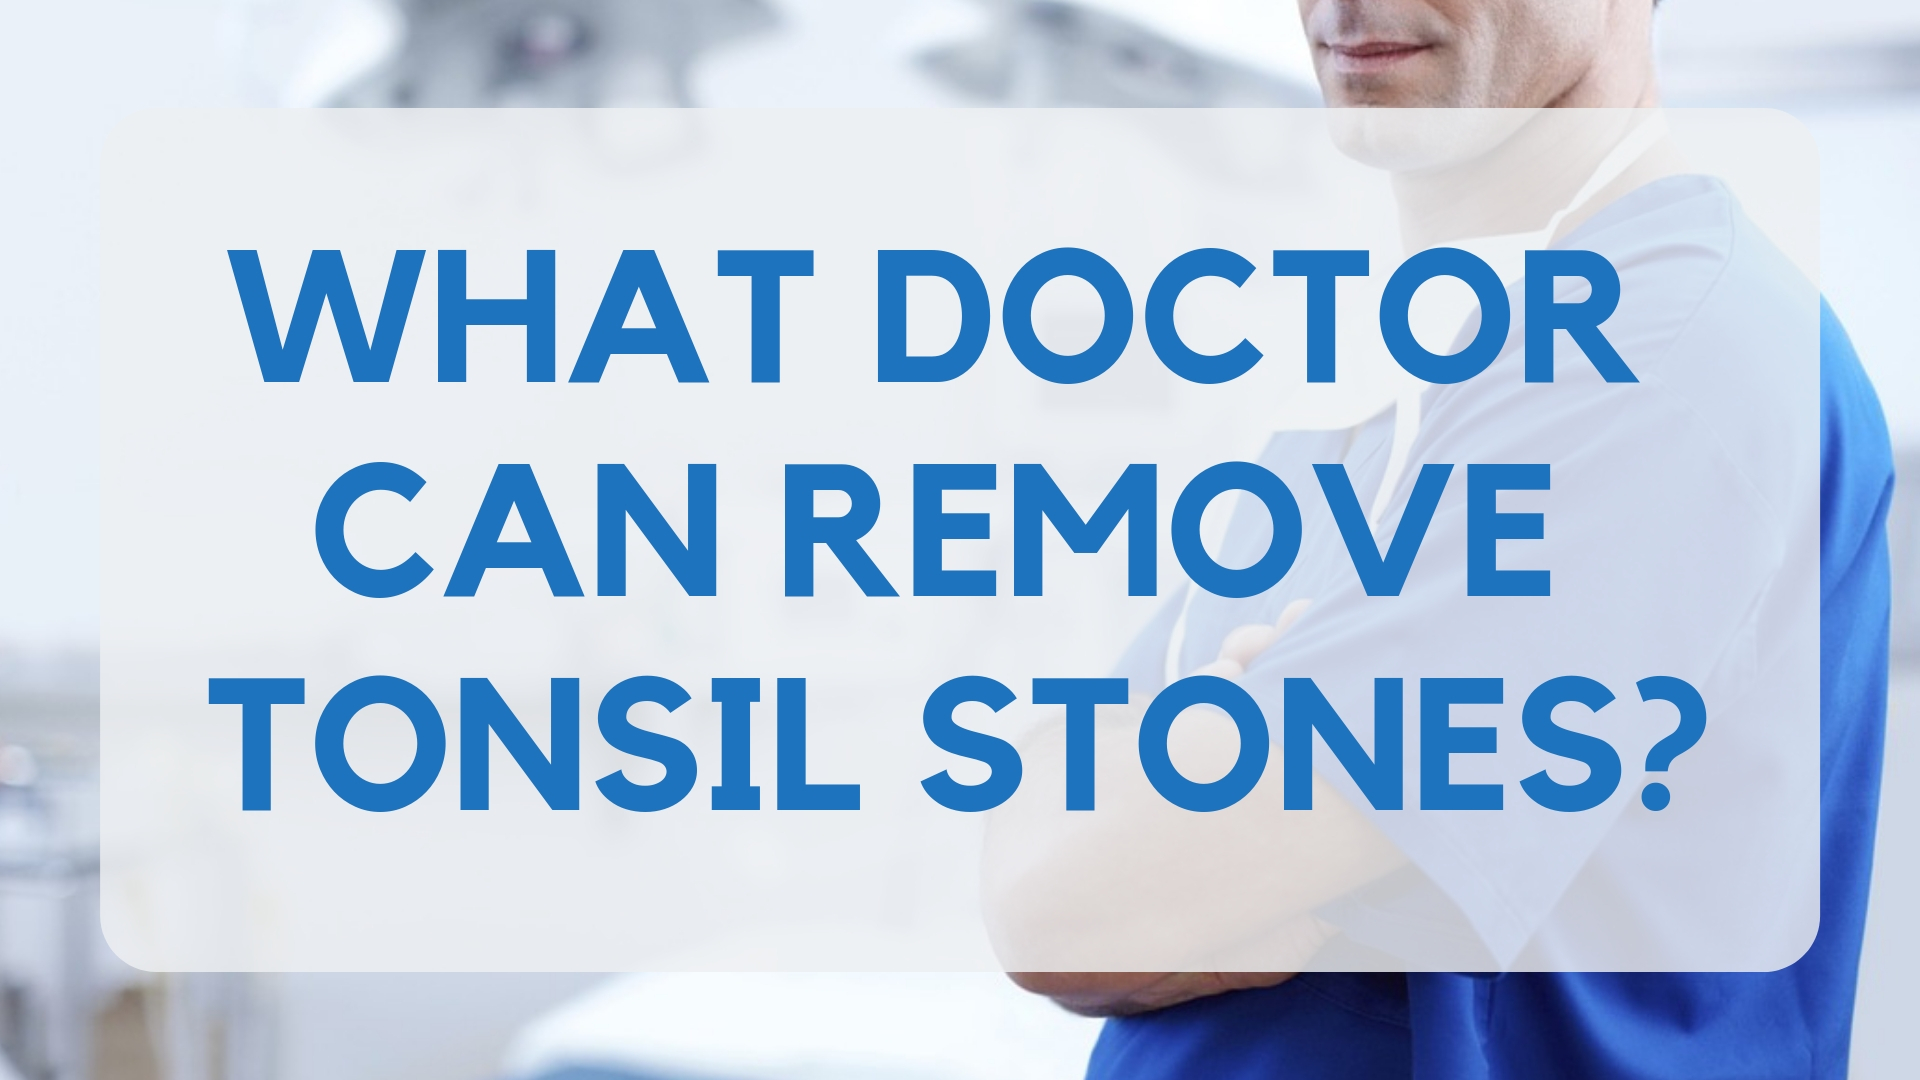 Tonsil Stone Removal Doctor: Who Can Remove Tonsil Stones